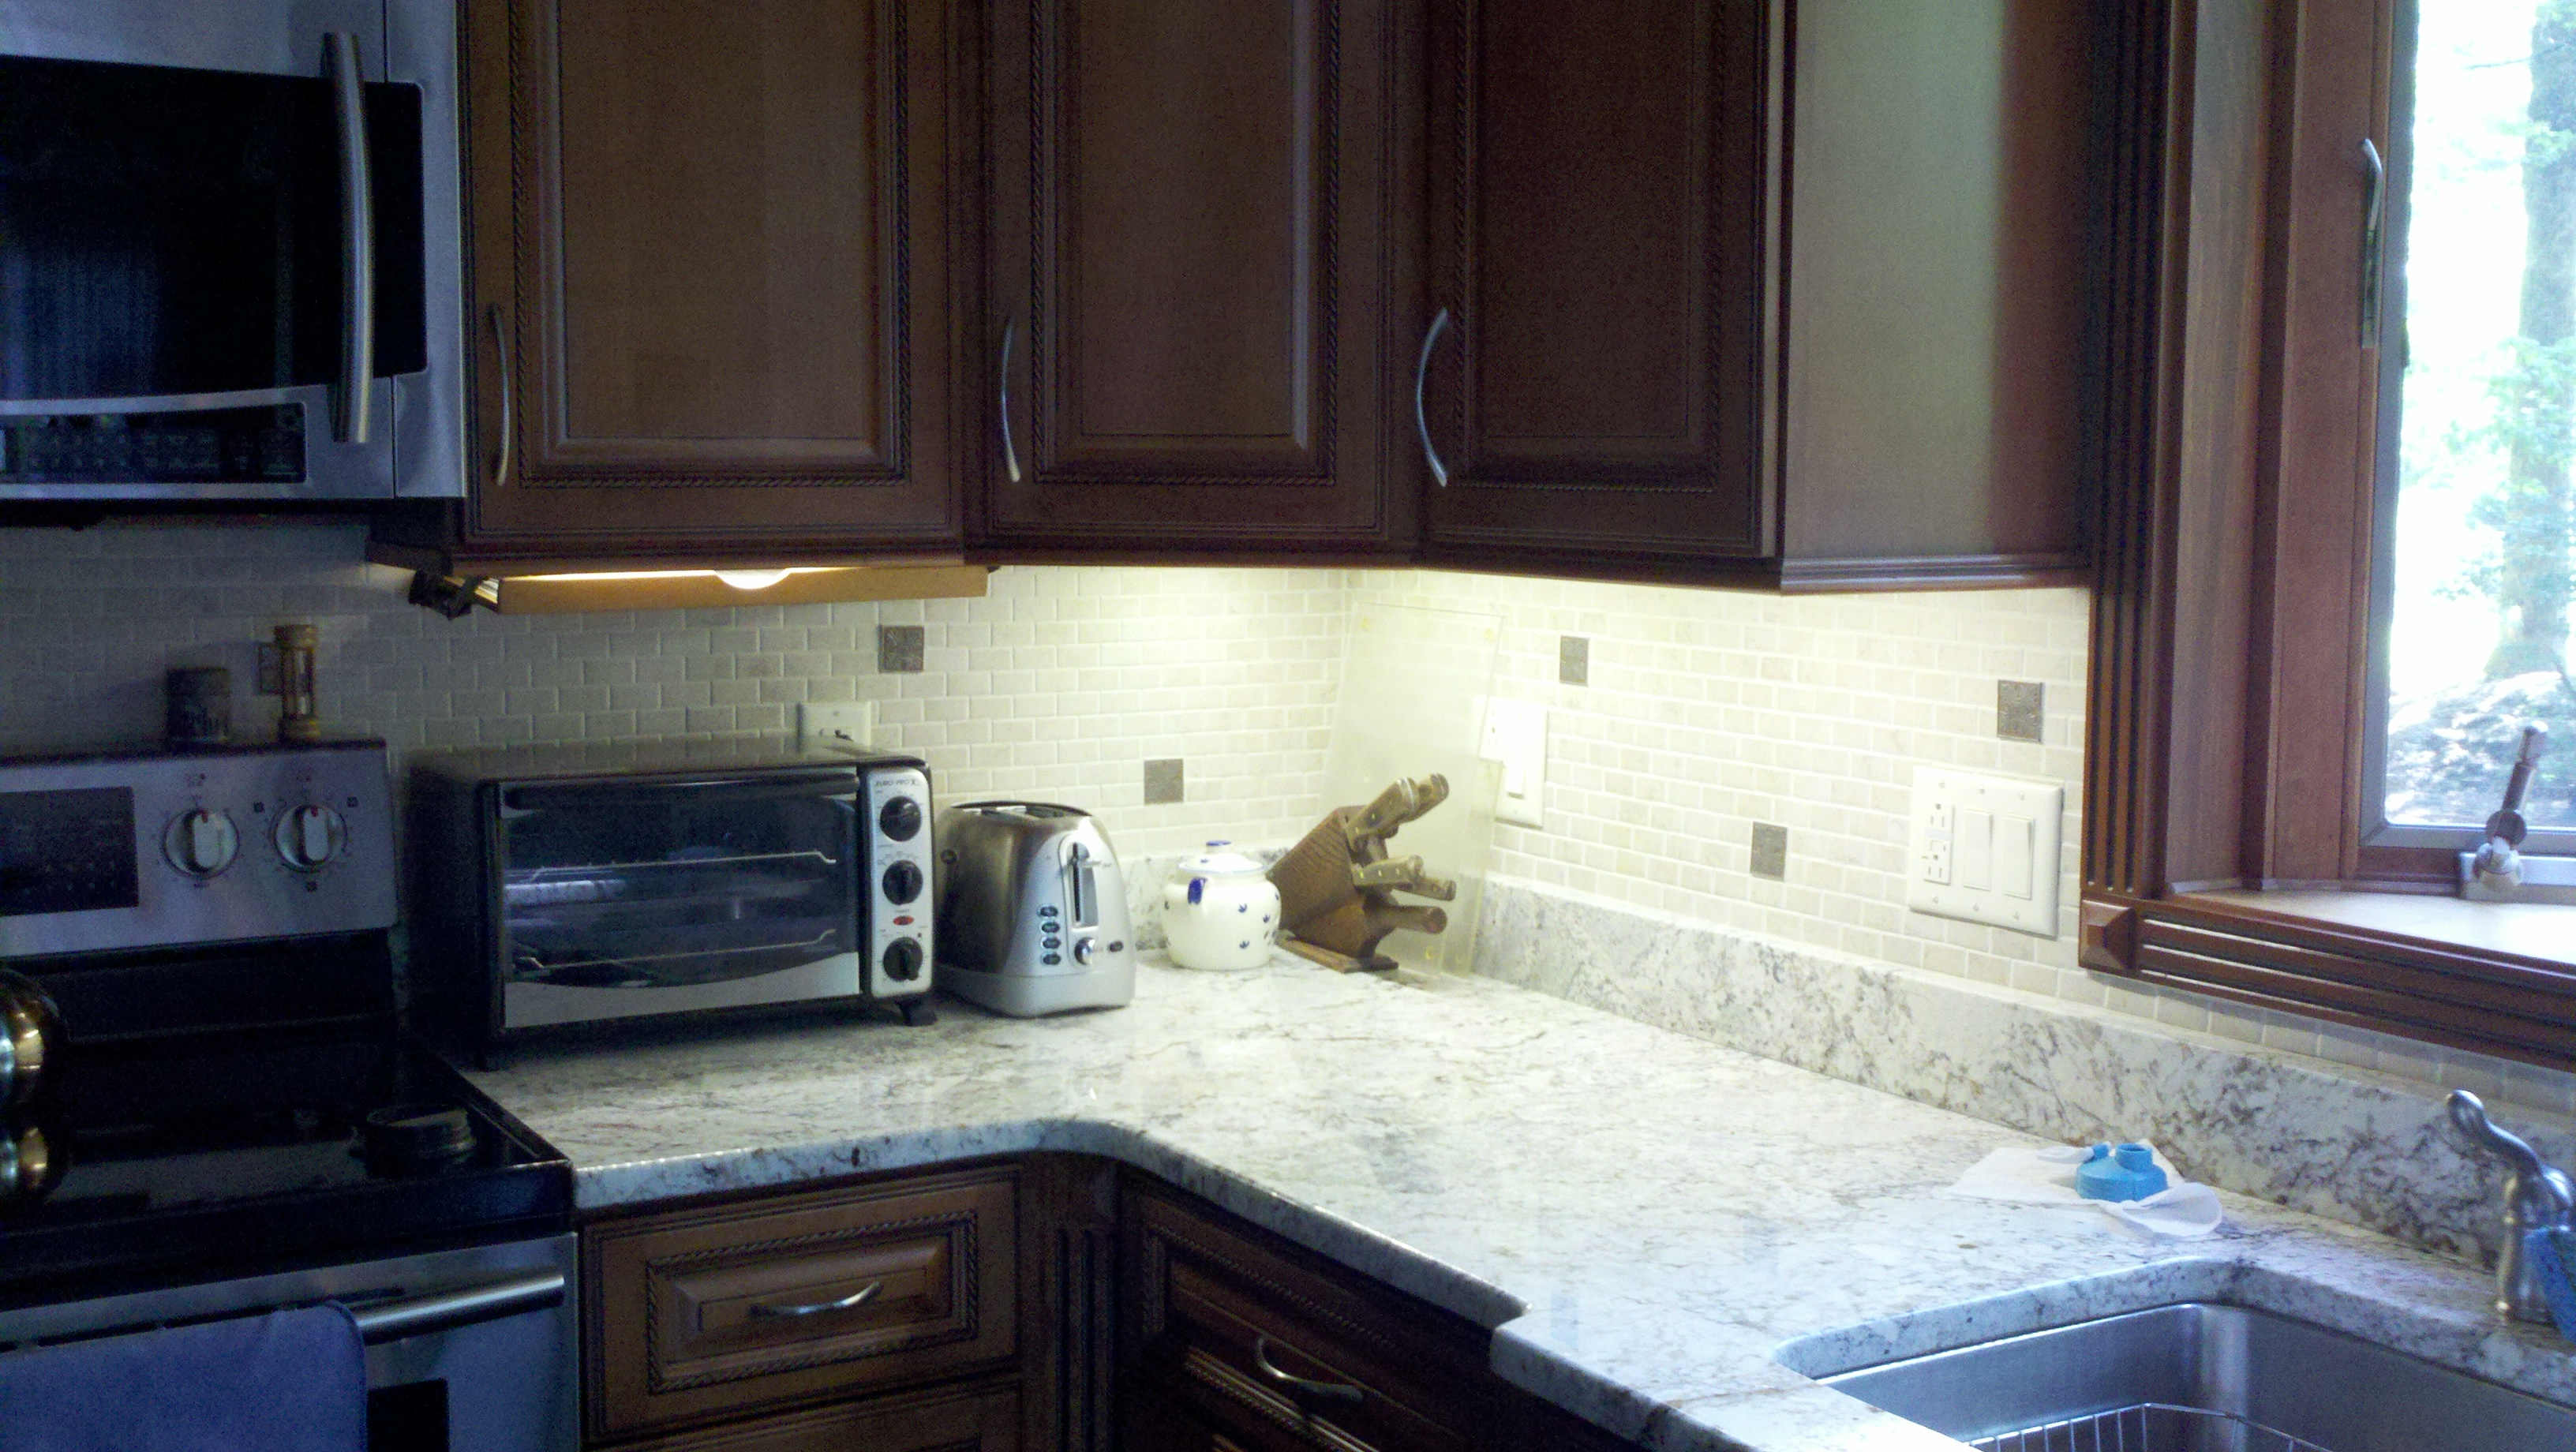 Kitchen Cabinets Under Lighting Howto Make Your Own Beautiful Under Cabinet Led Lights